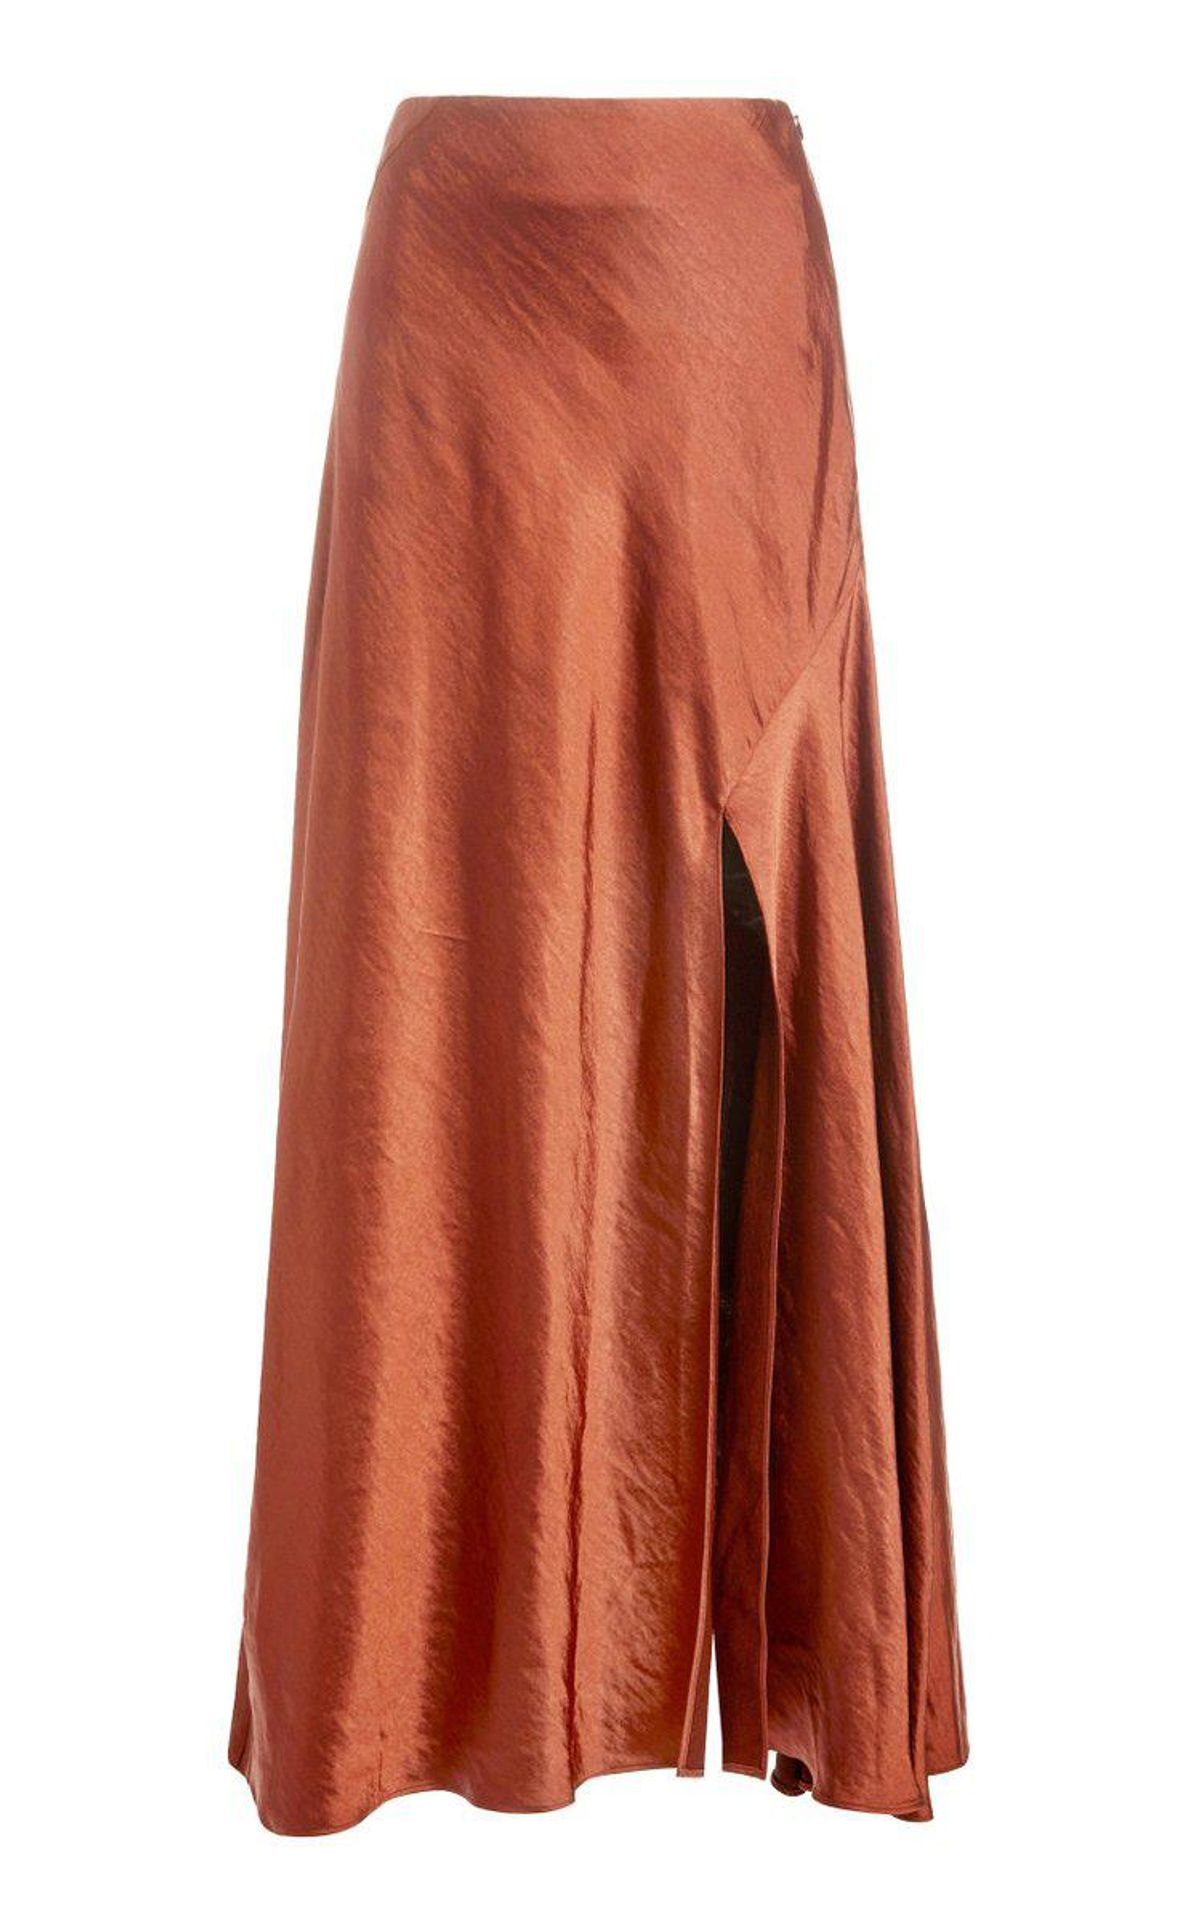 Aura High Rise Satin Skirt